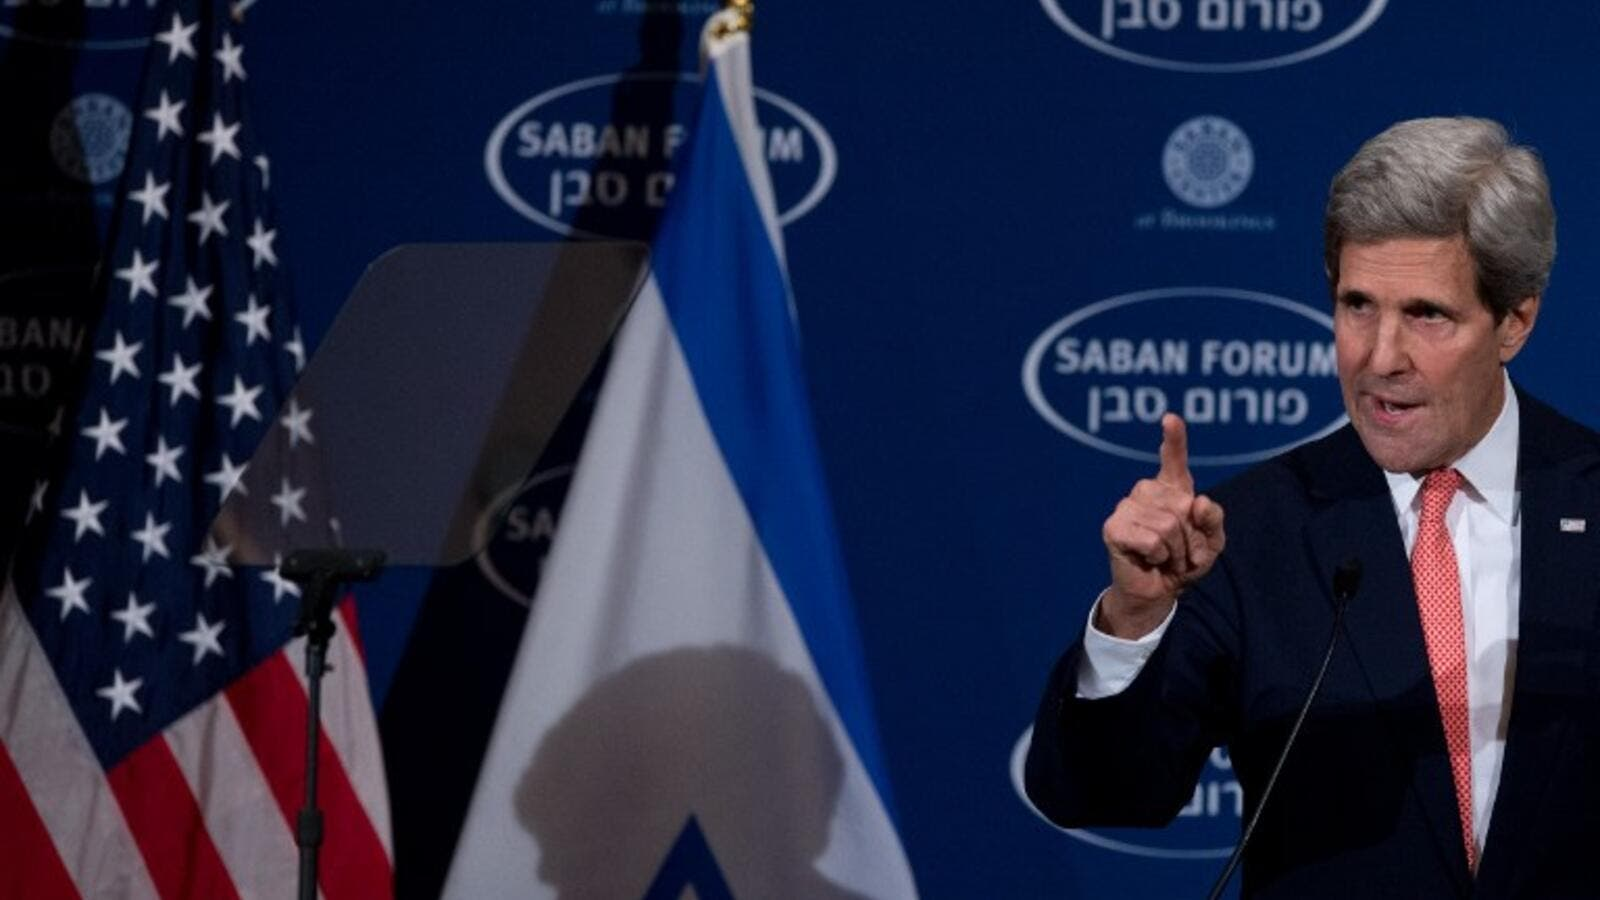 US Secretary of State John Kerry delivers the keynote address at the 10th Anniversary Saban Forum, Power Shifts: US-Israel Relations in a Dynamic Middle East, in Washington on December 7, 2013. (AFP)